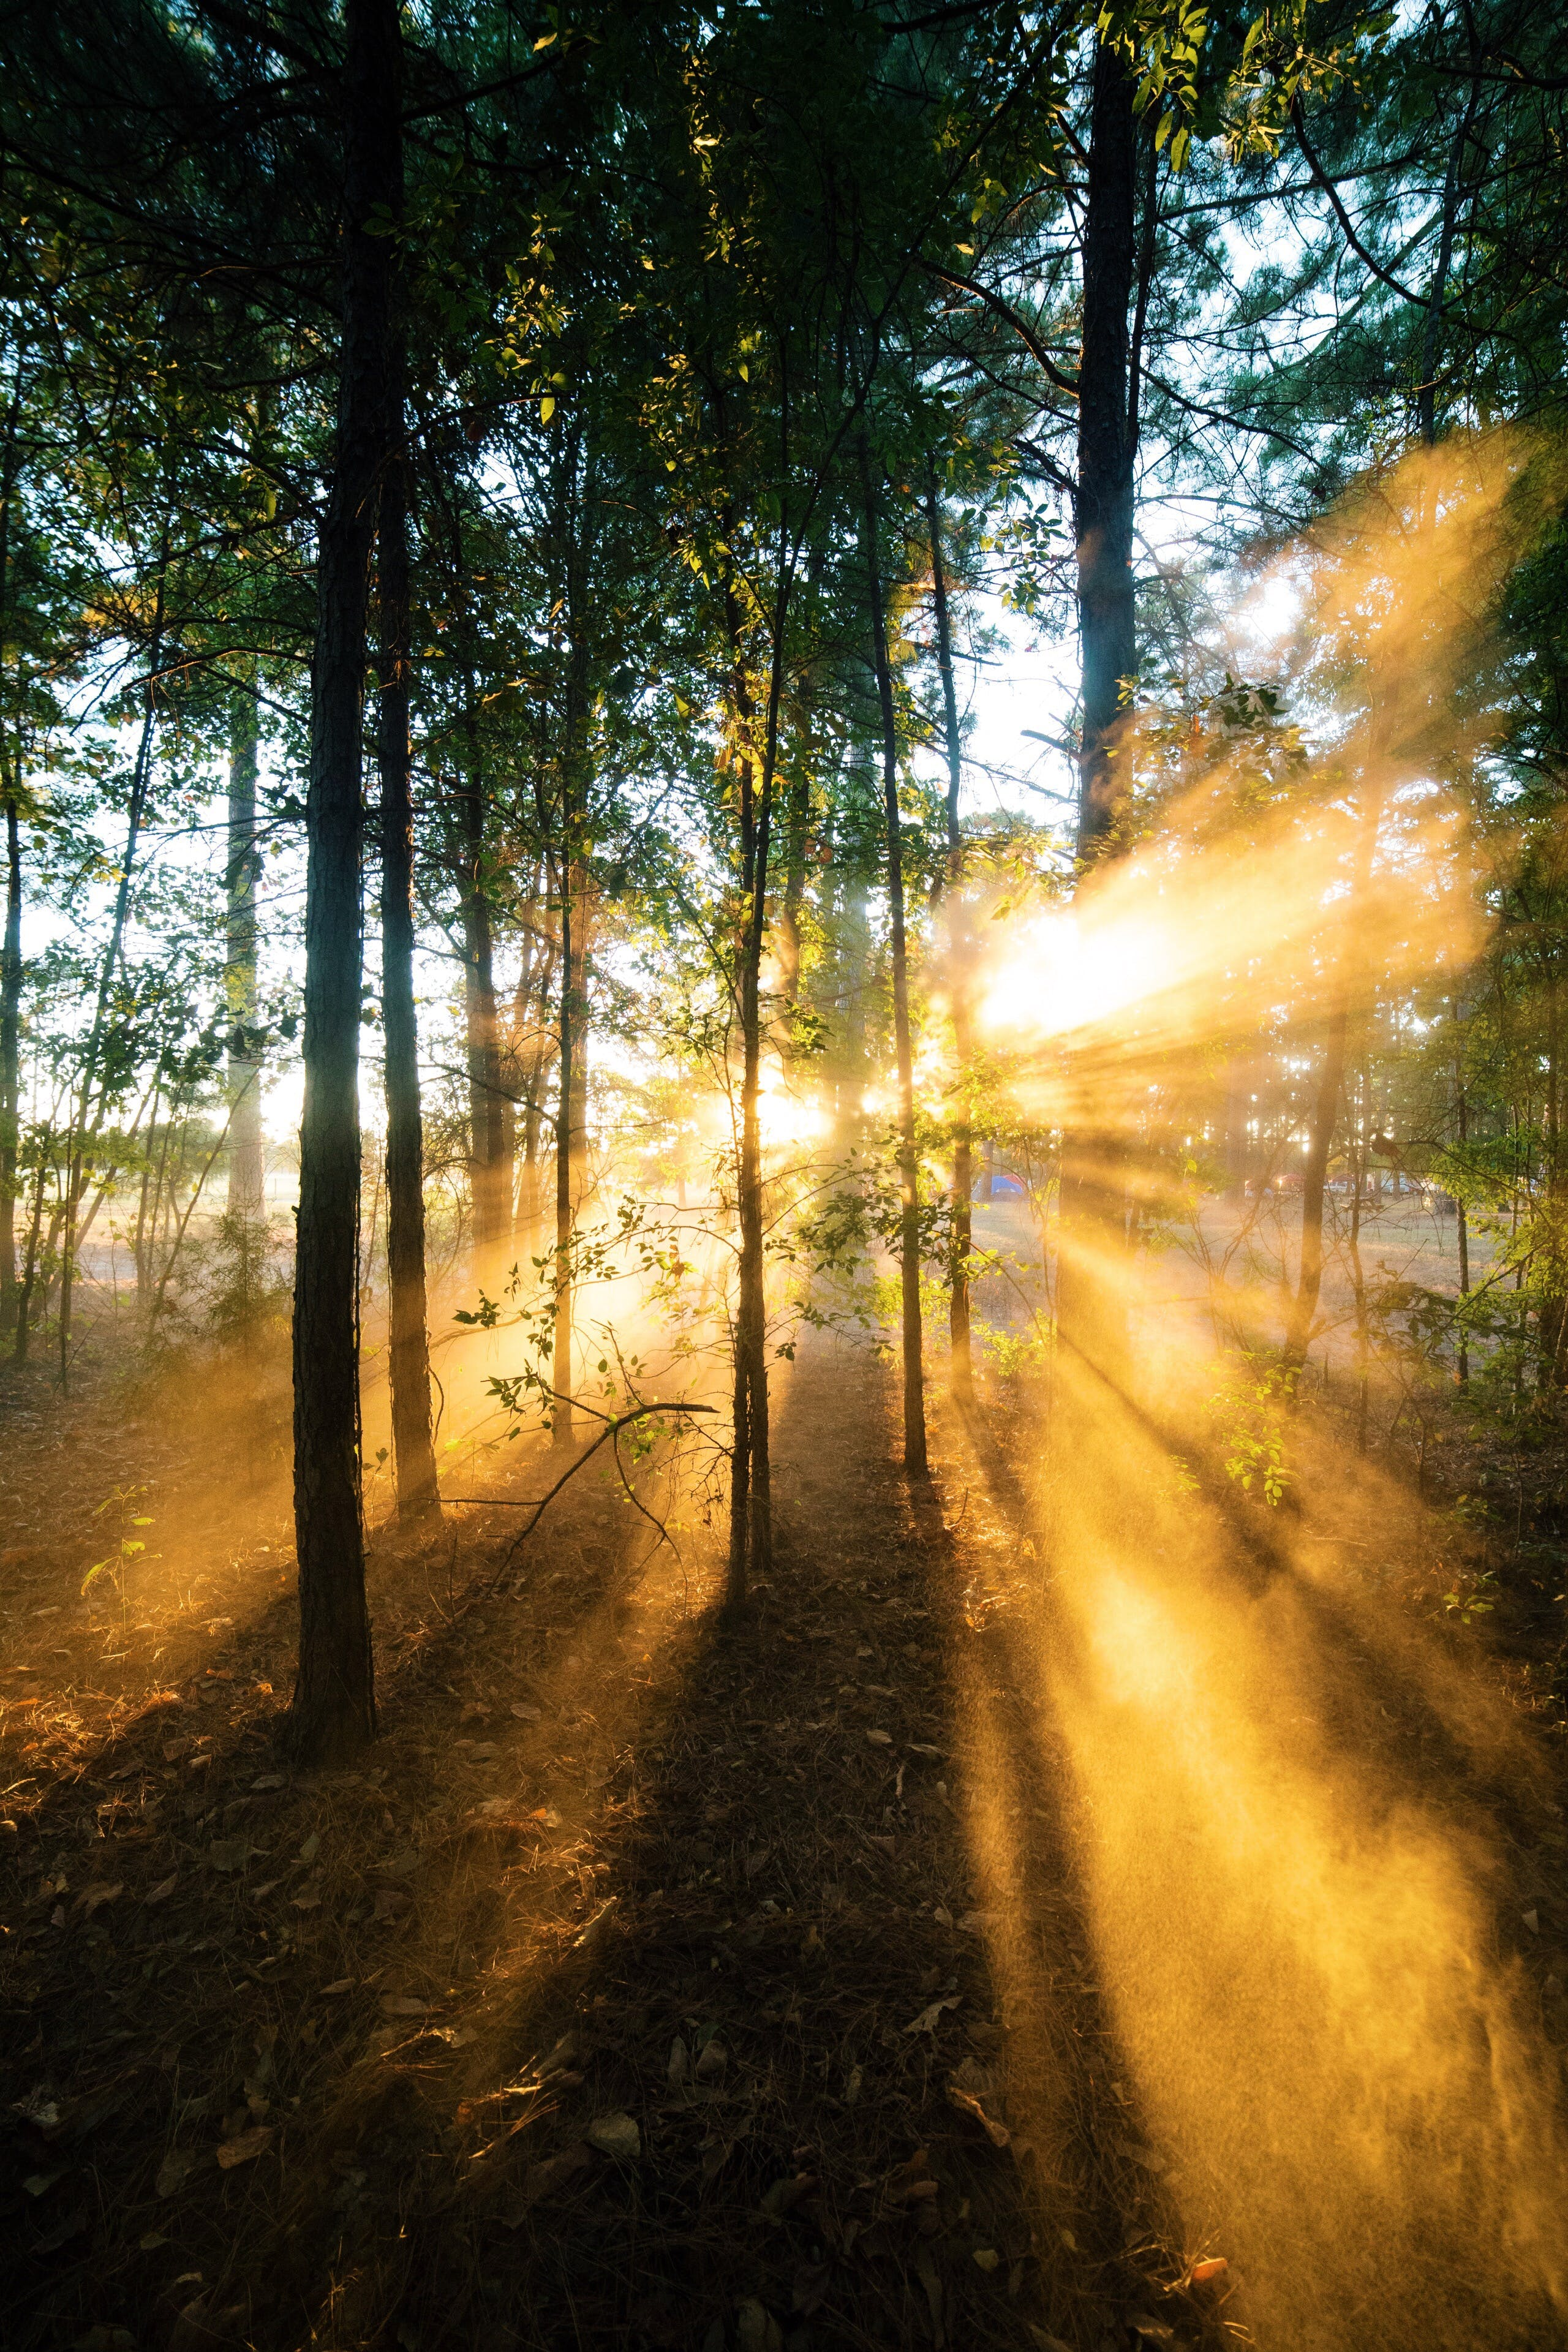 Sunrise Shade  of a Forest